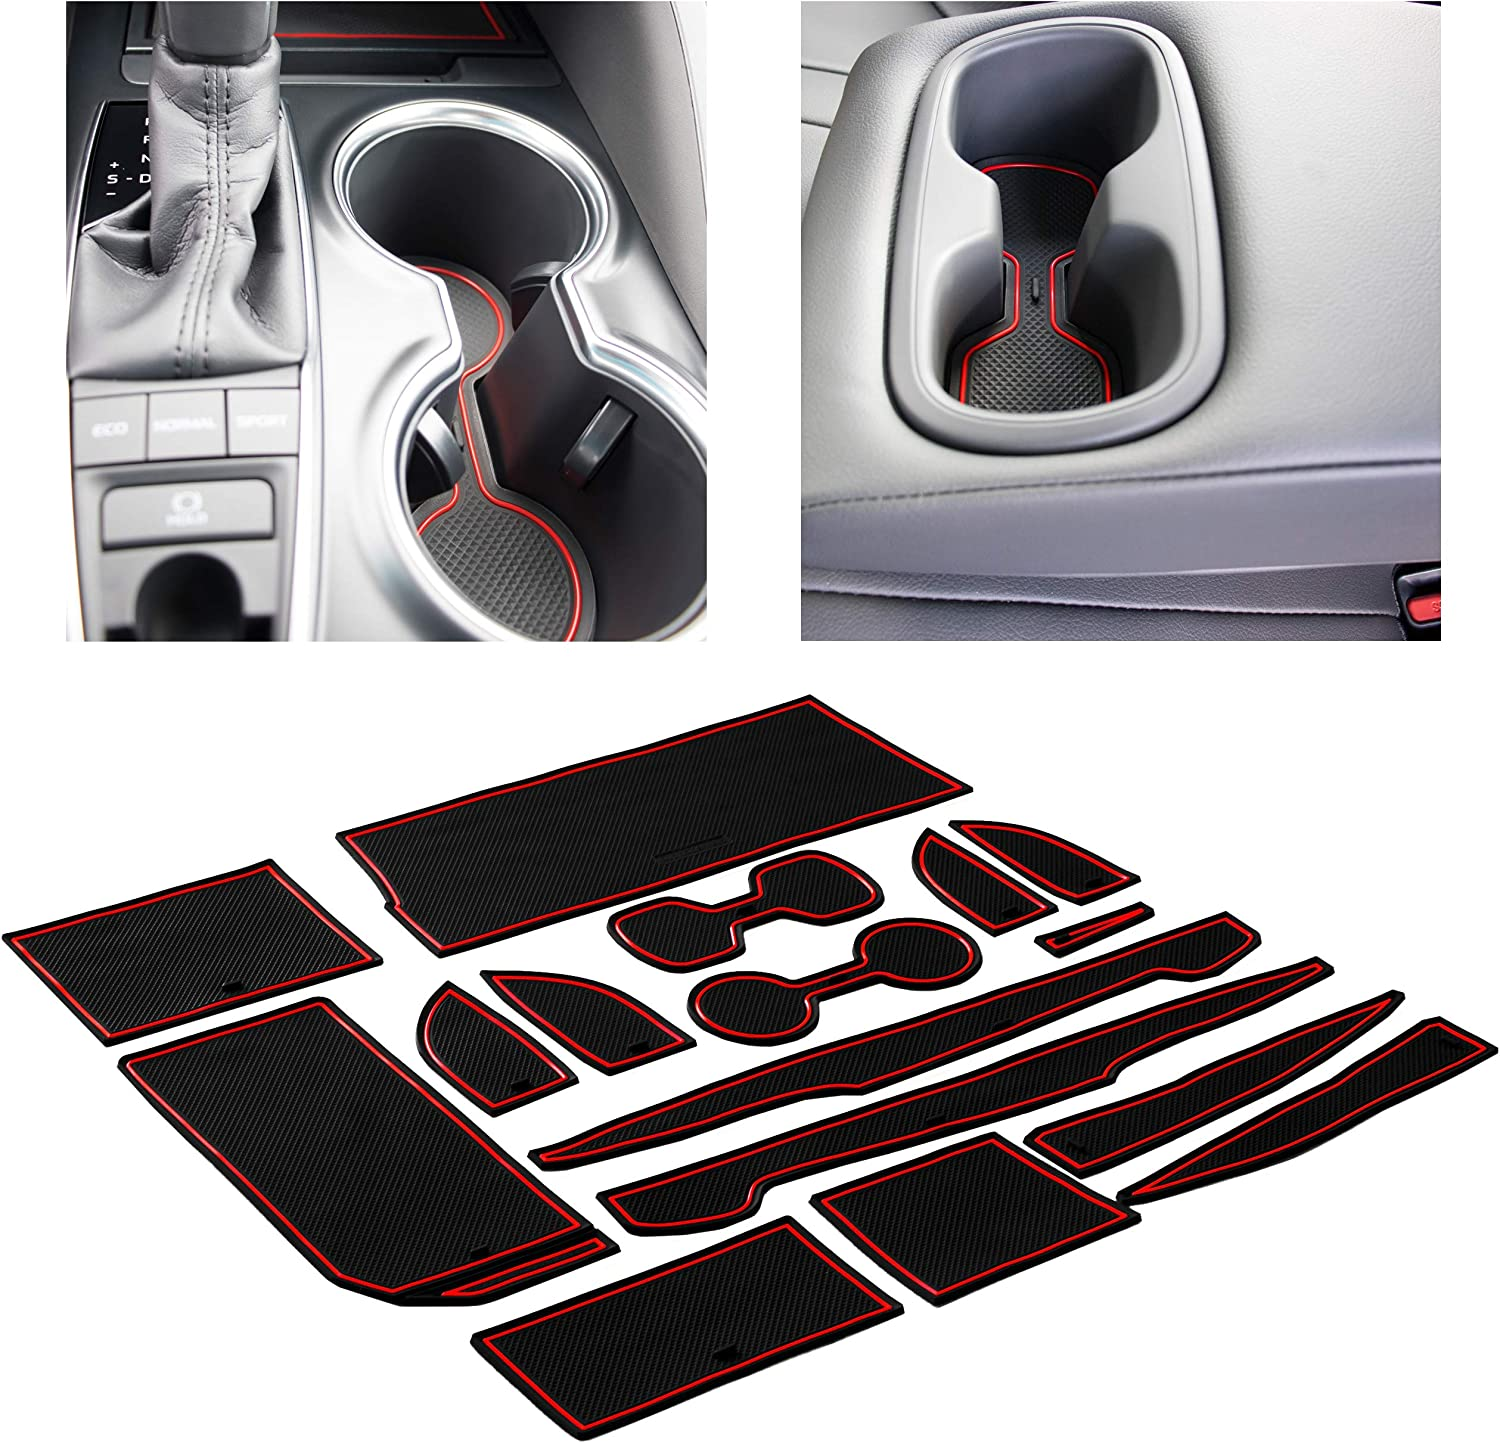 CupHolderHero fits Toyota Camry 2018-2022 Bombing new work Outlet sale feature Premium Accessories Cu